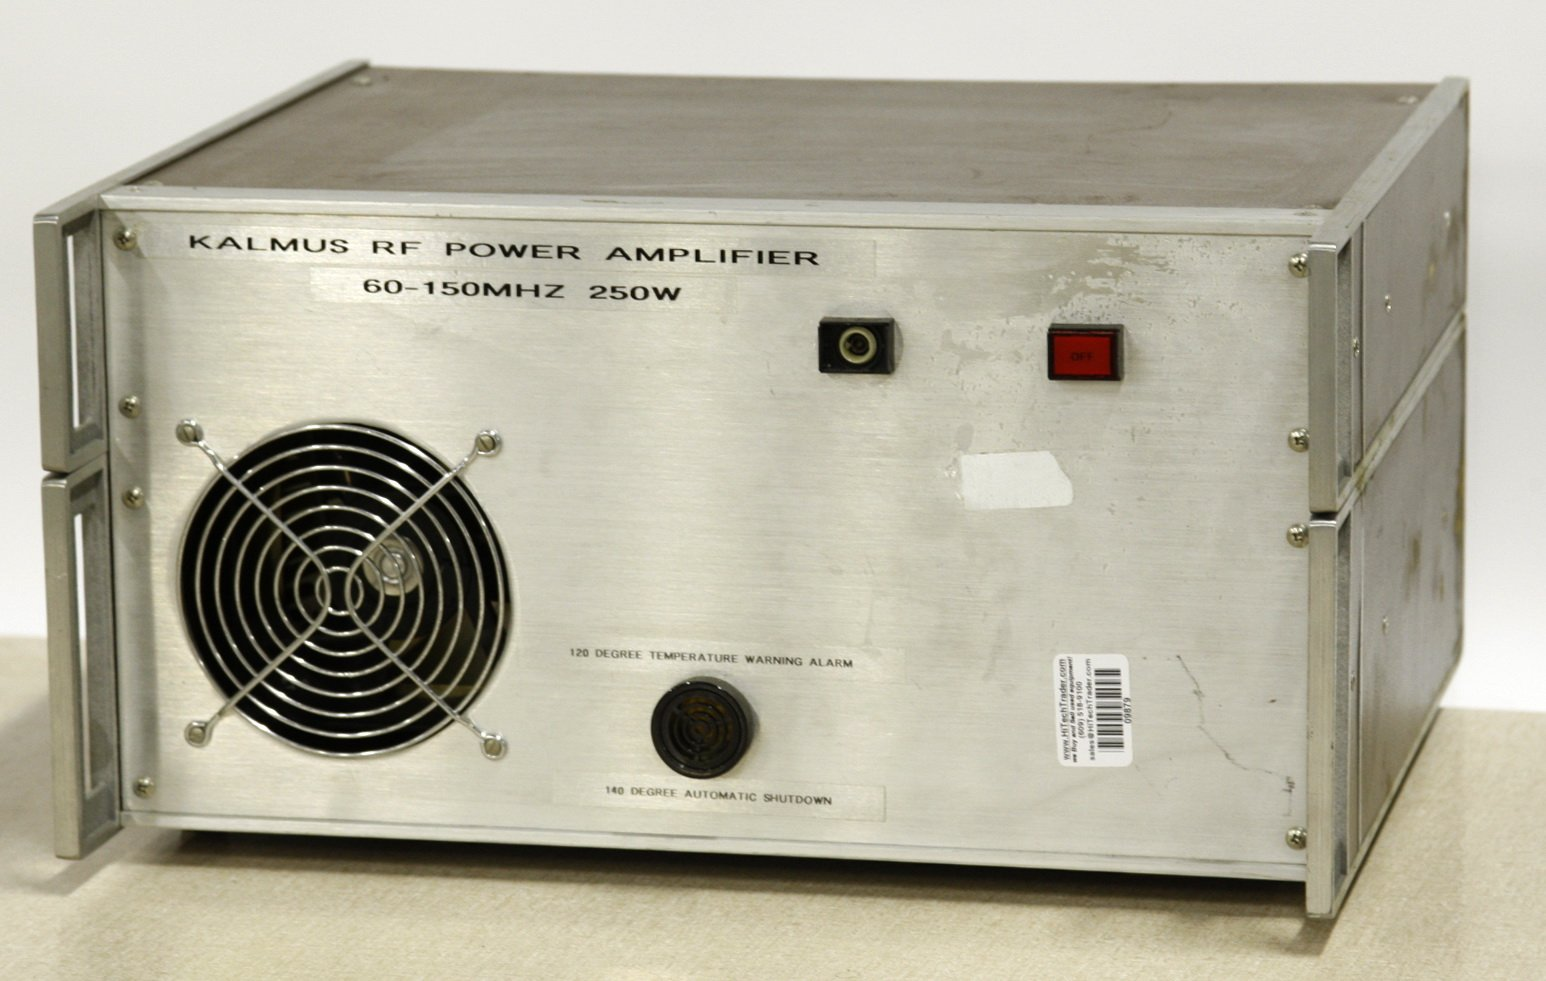 Kalmus RF Power Amplifier